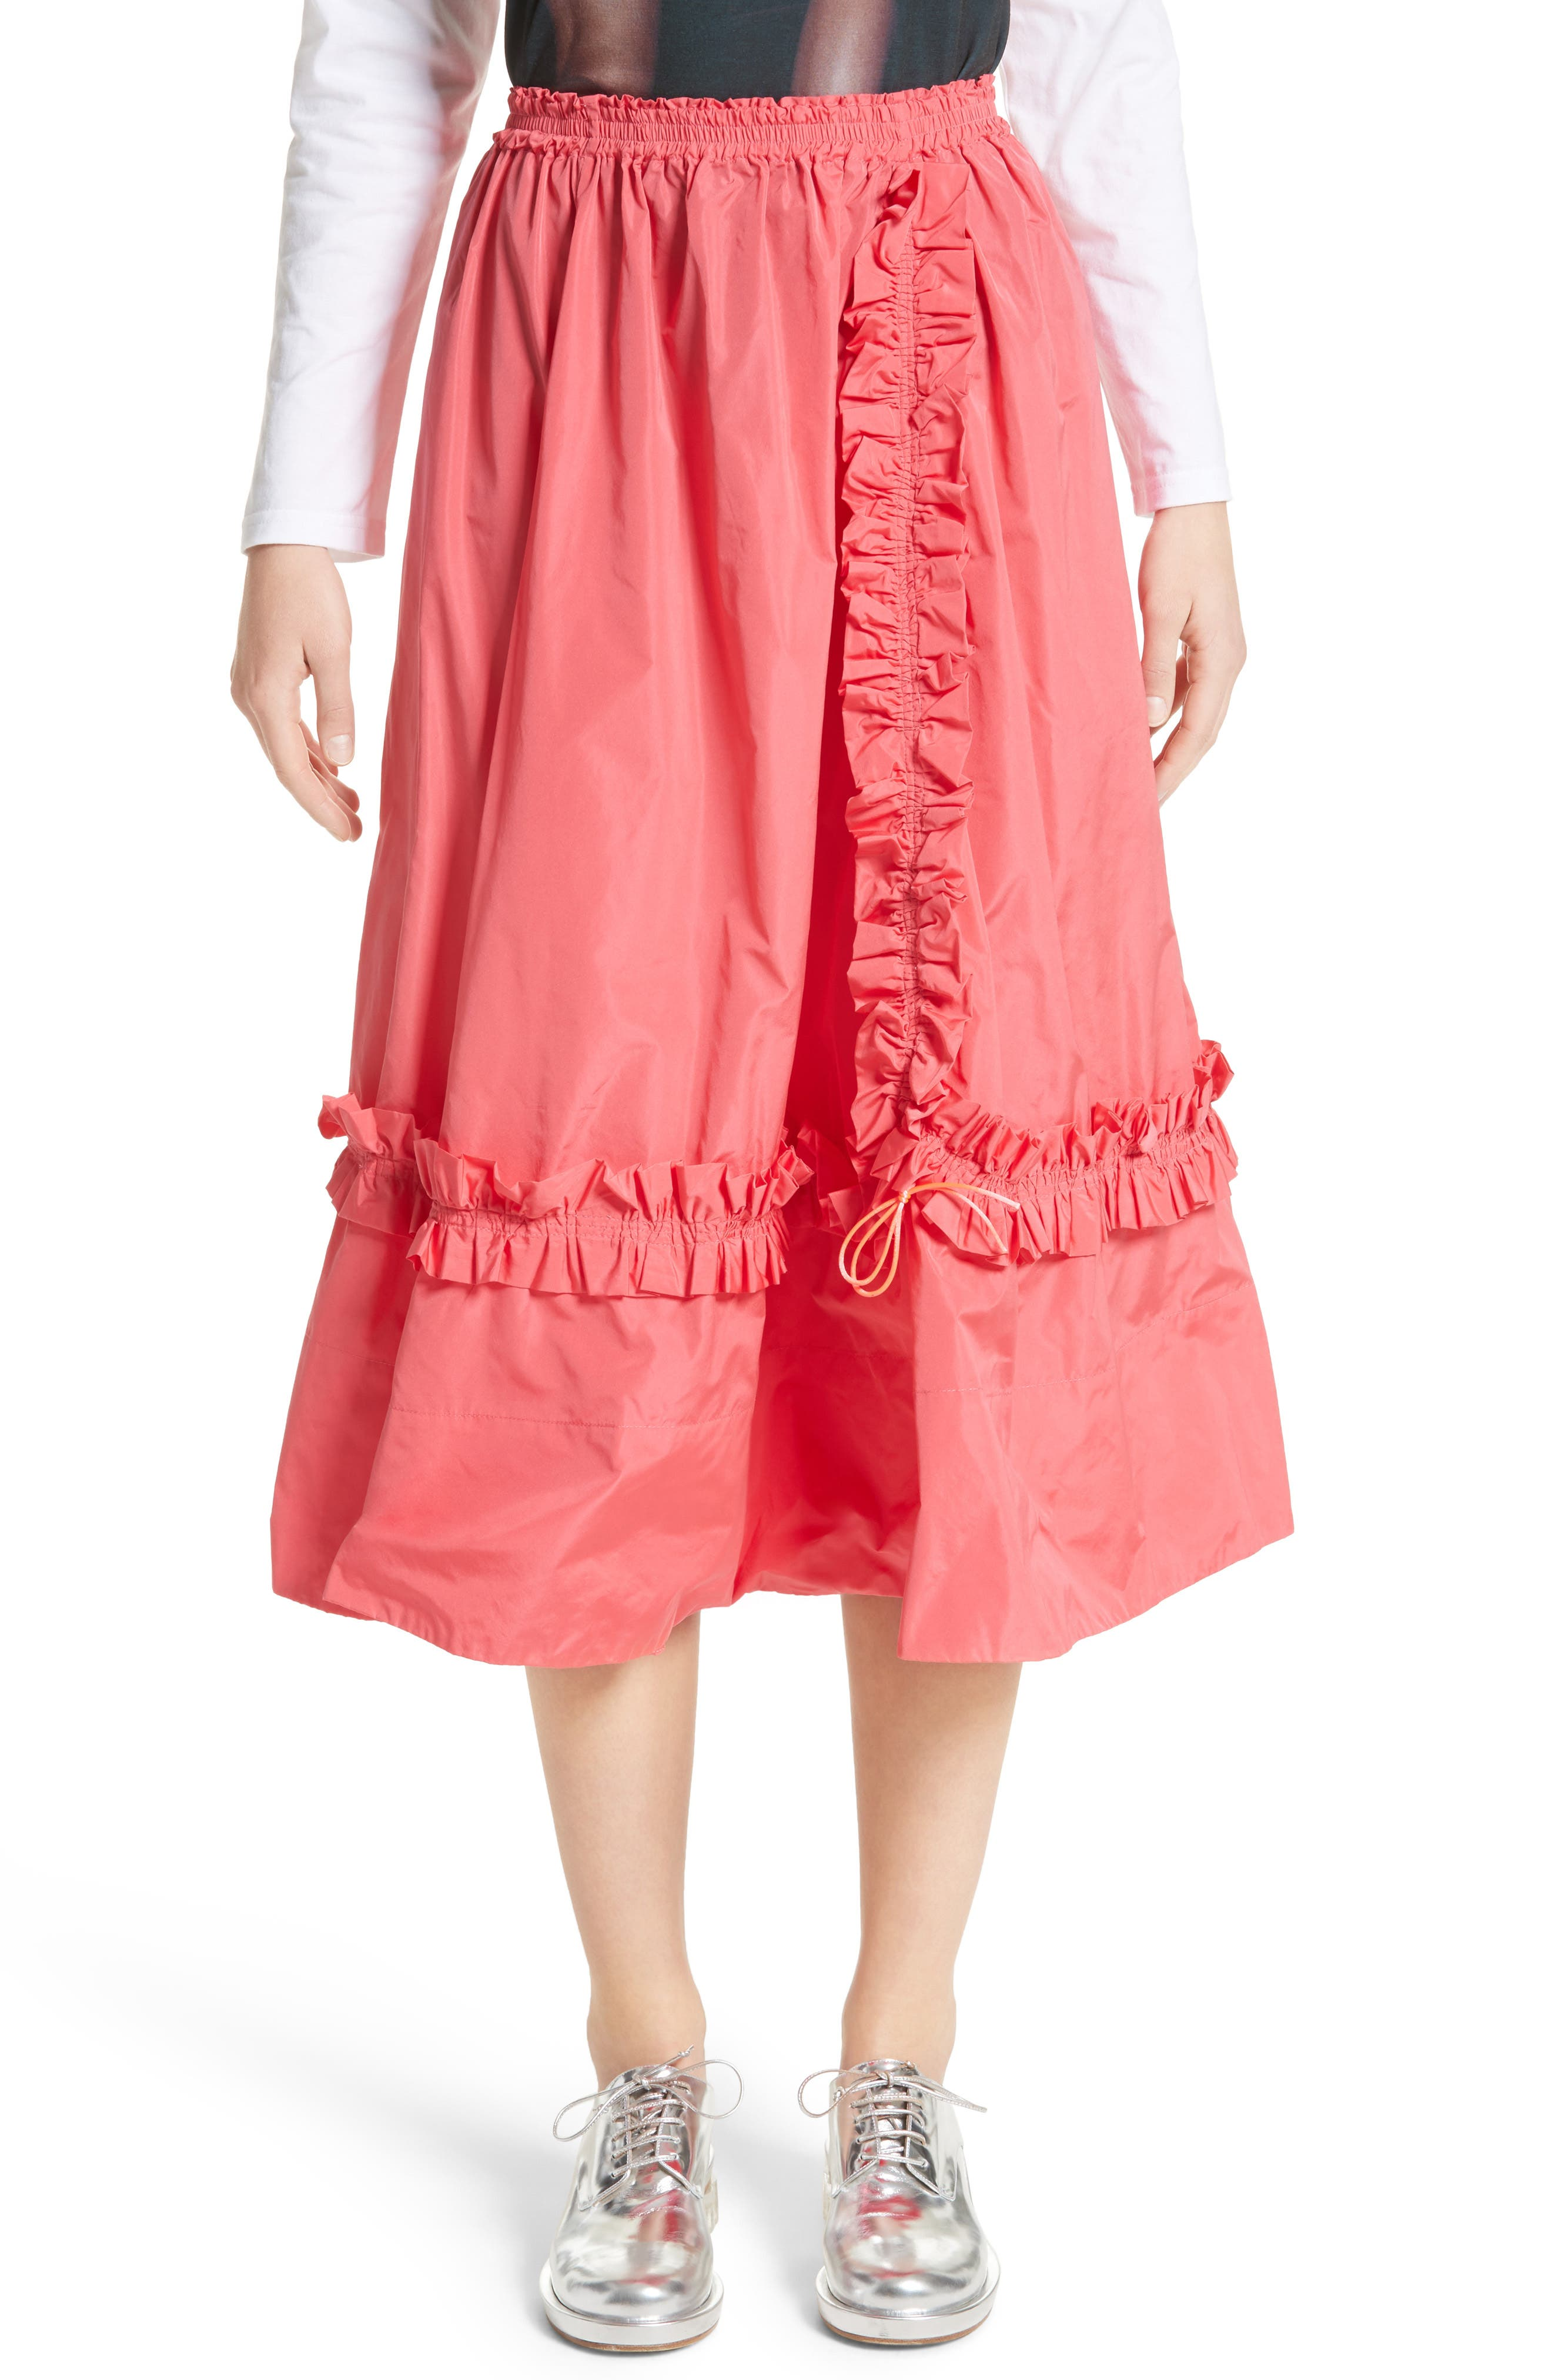 Molly Goddard Skirt (Nordstrom Exclusive)